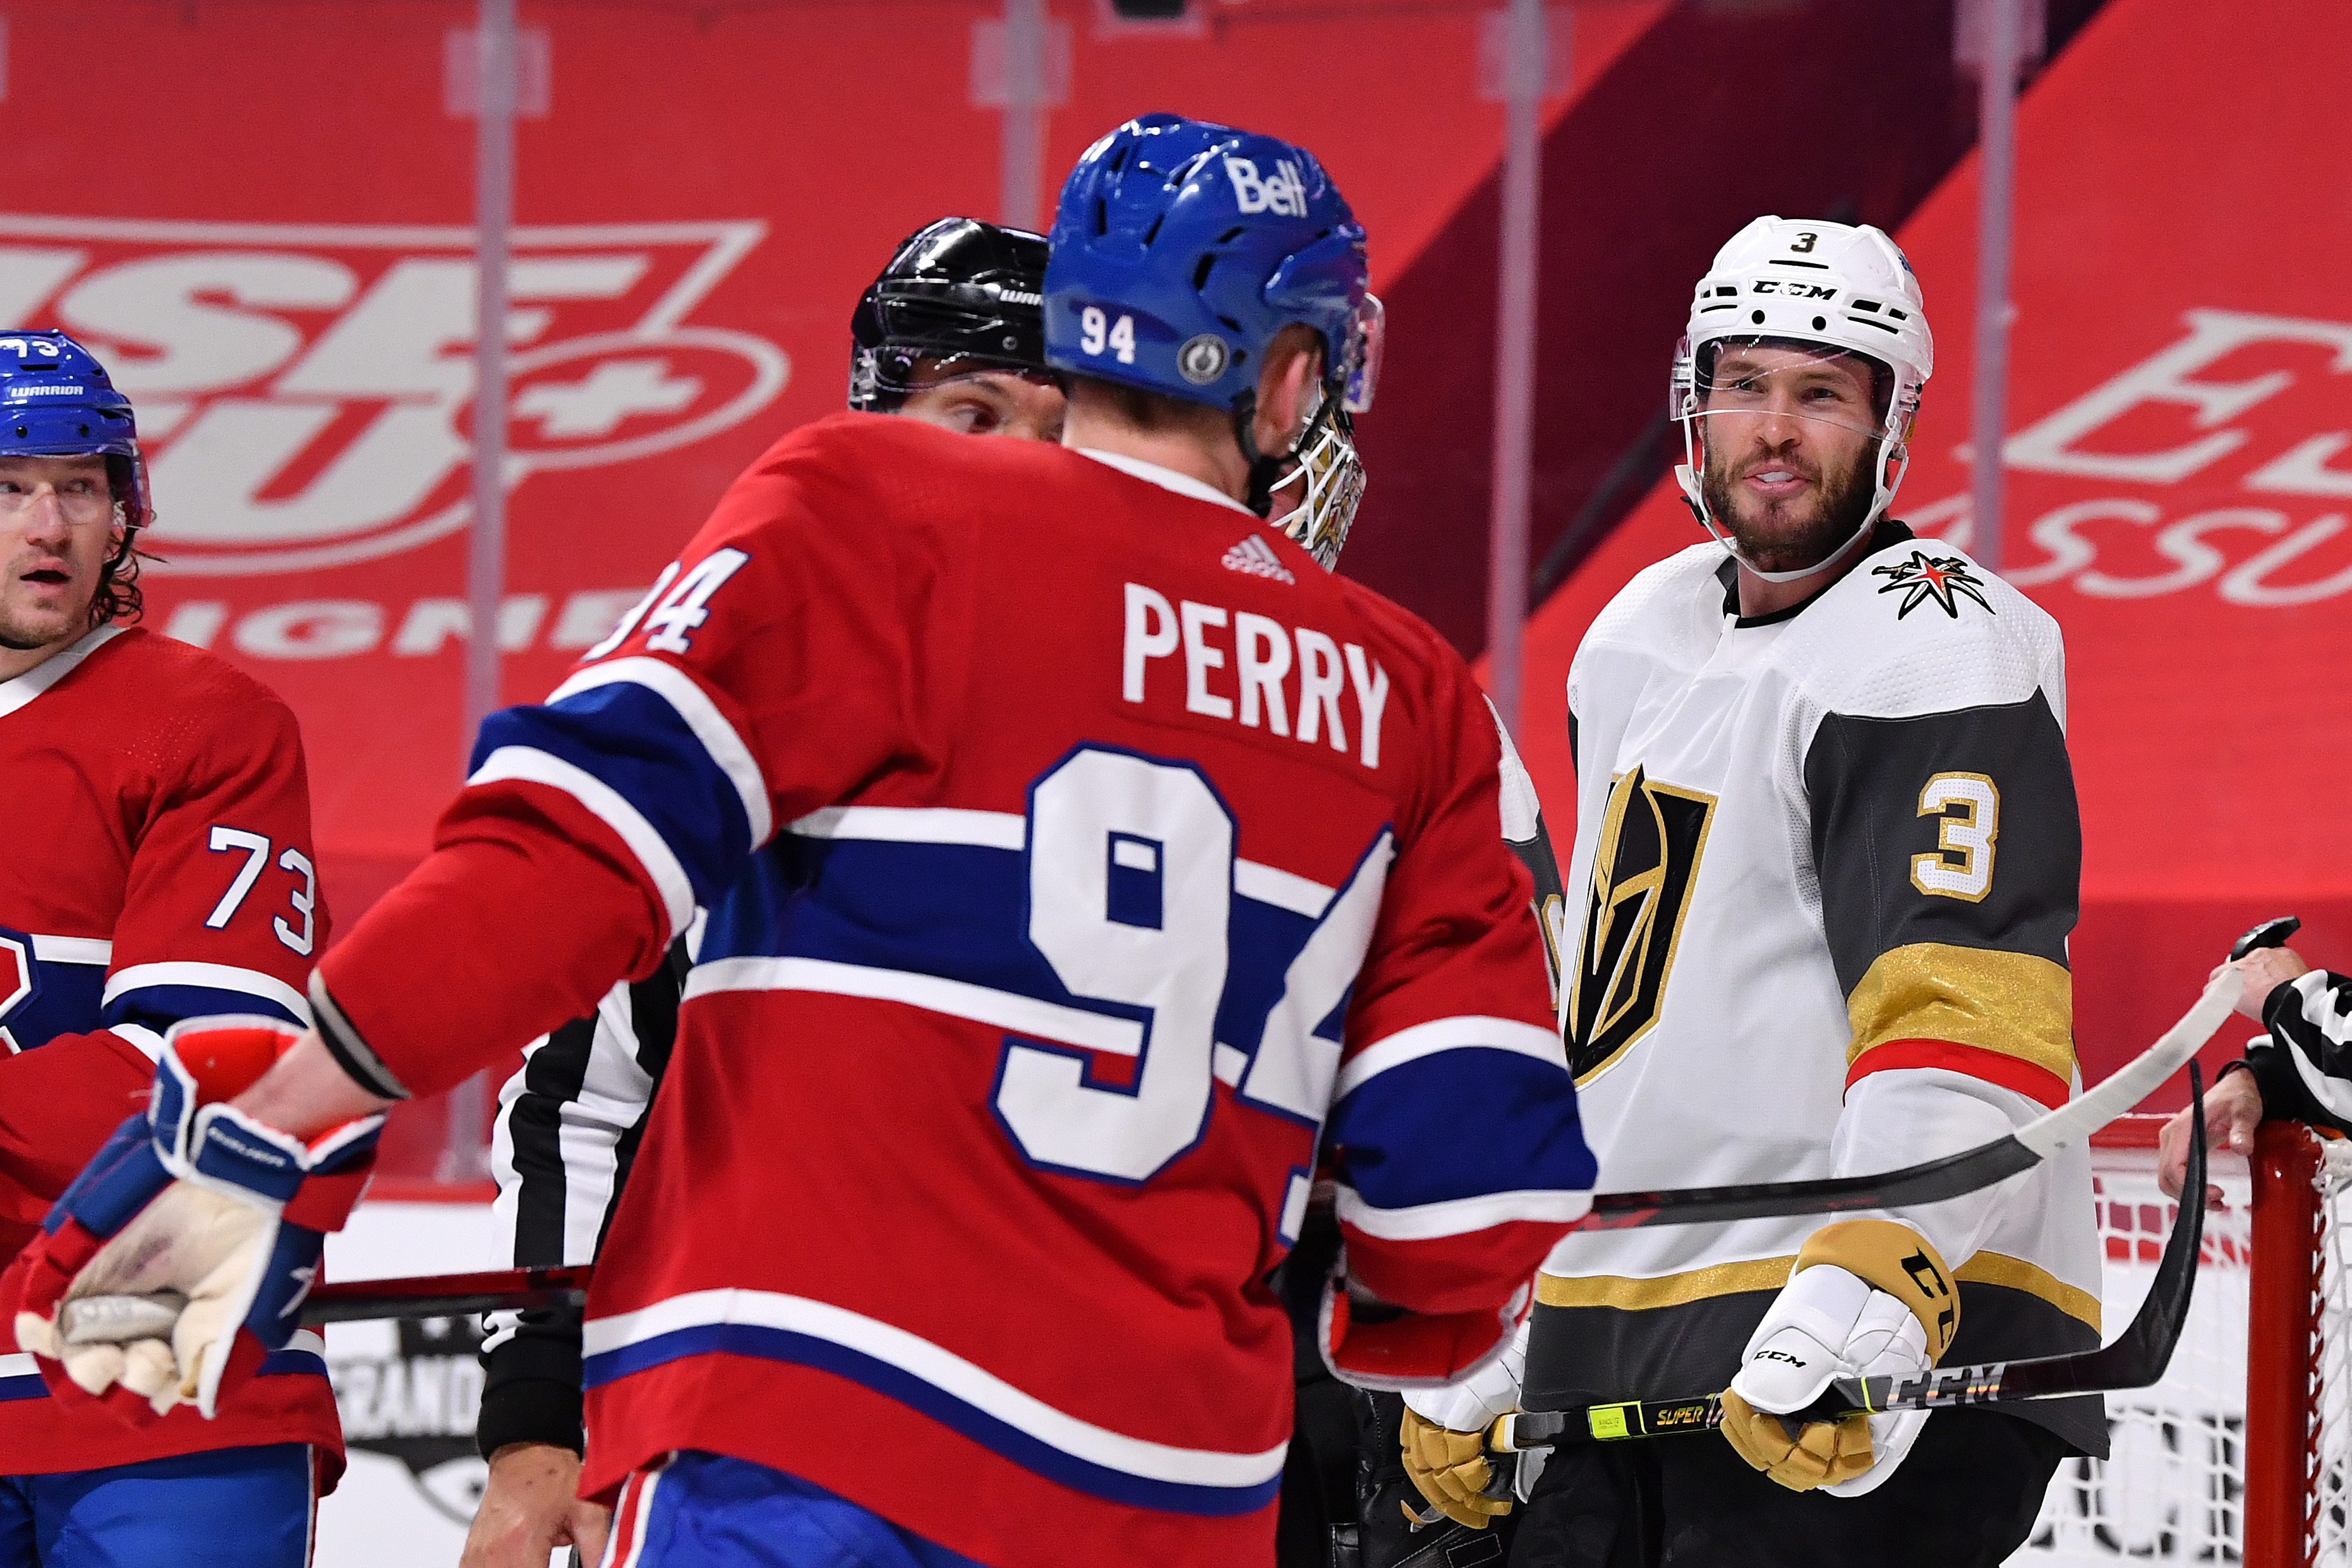 Brayden McNabb #3 of the Vegas Golden Knights and Corey Perry #94 of the Montreal Canadiens exchange words during the second period in Game Four of the Stanley Cup Semifinals of the 2021 Stanley Cup Playoffs at Bell Centre on June 20, 2021 in Montreal, Quebec.